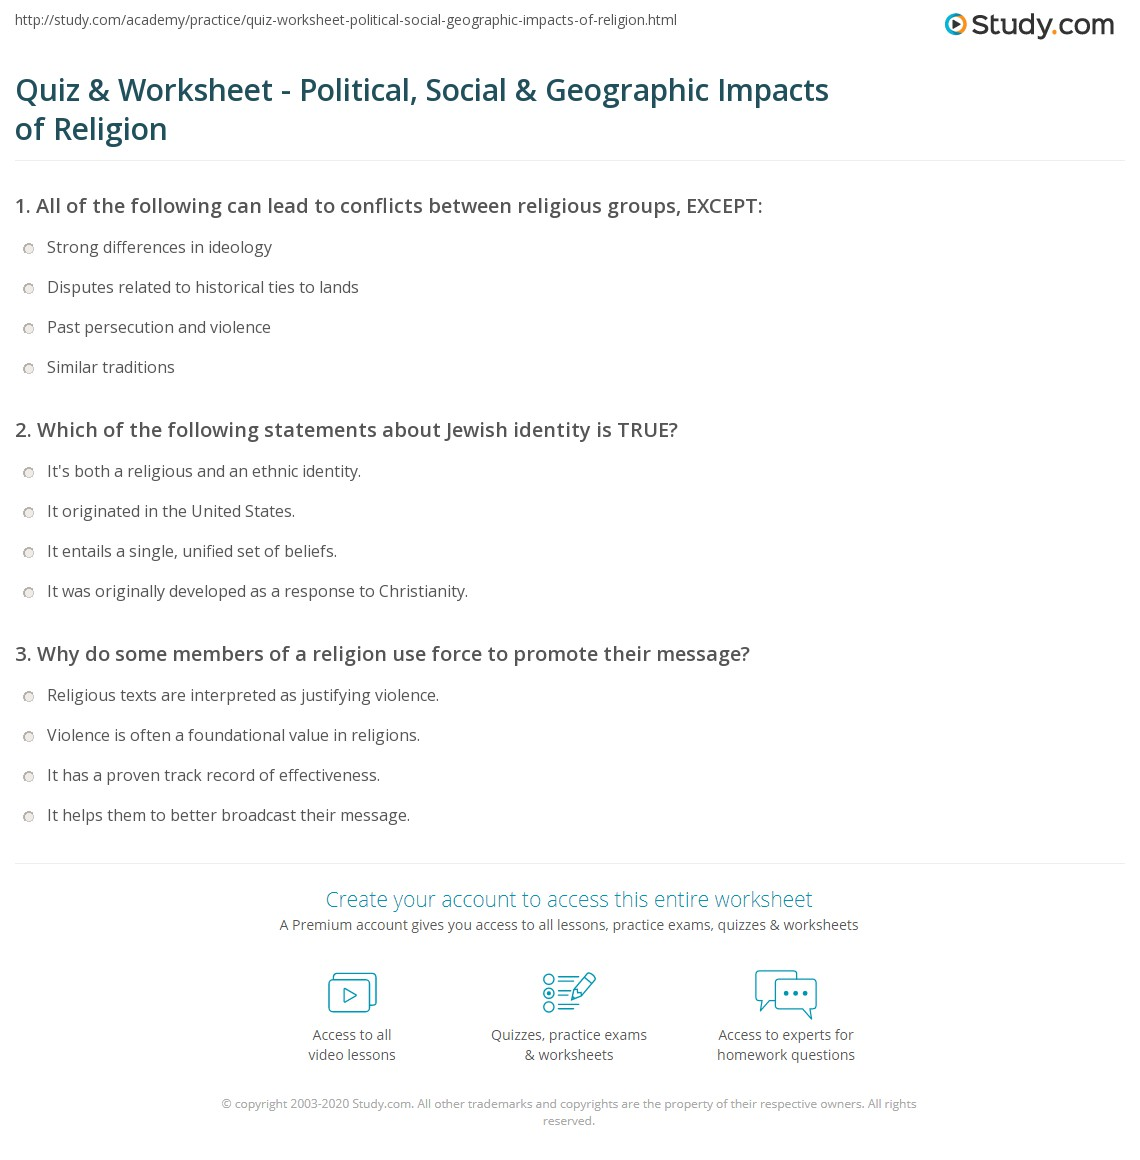 Print Geography of Religion: Political \u0026 Social Impacts Worksheet